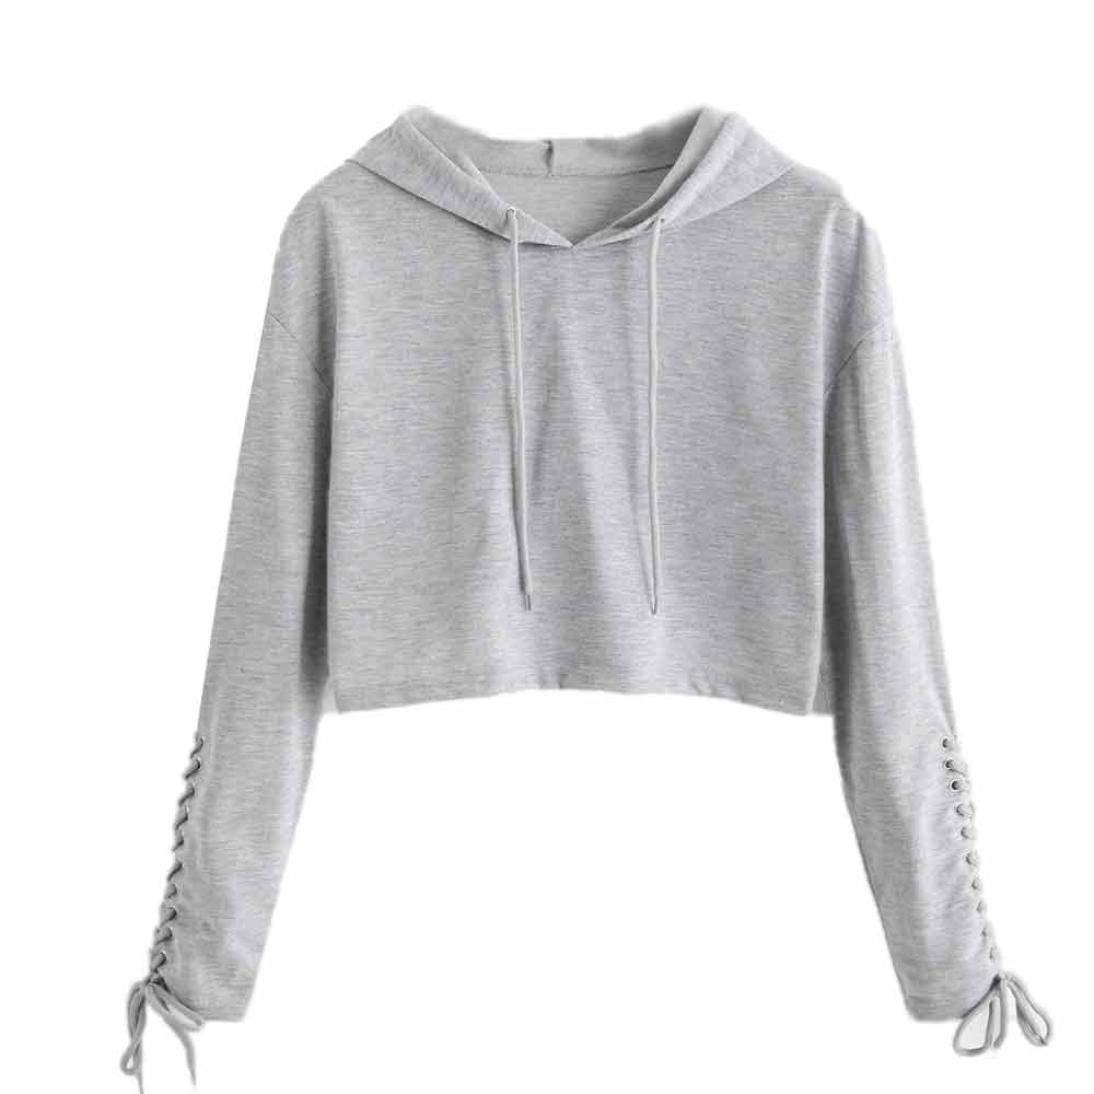 40ed1595fcd259 Get Quotations · Women Hoodie Sweatshirt Crop Top Sports Pullover Shirt  Casual Long Sleeve Blouse